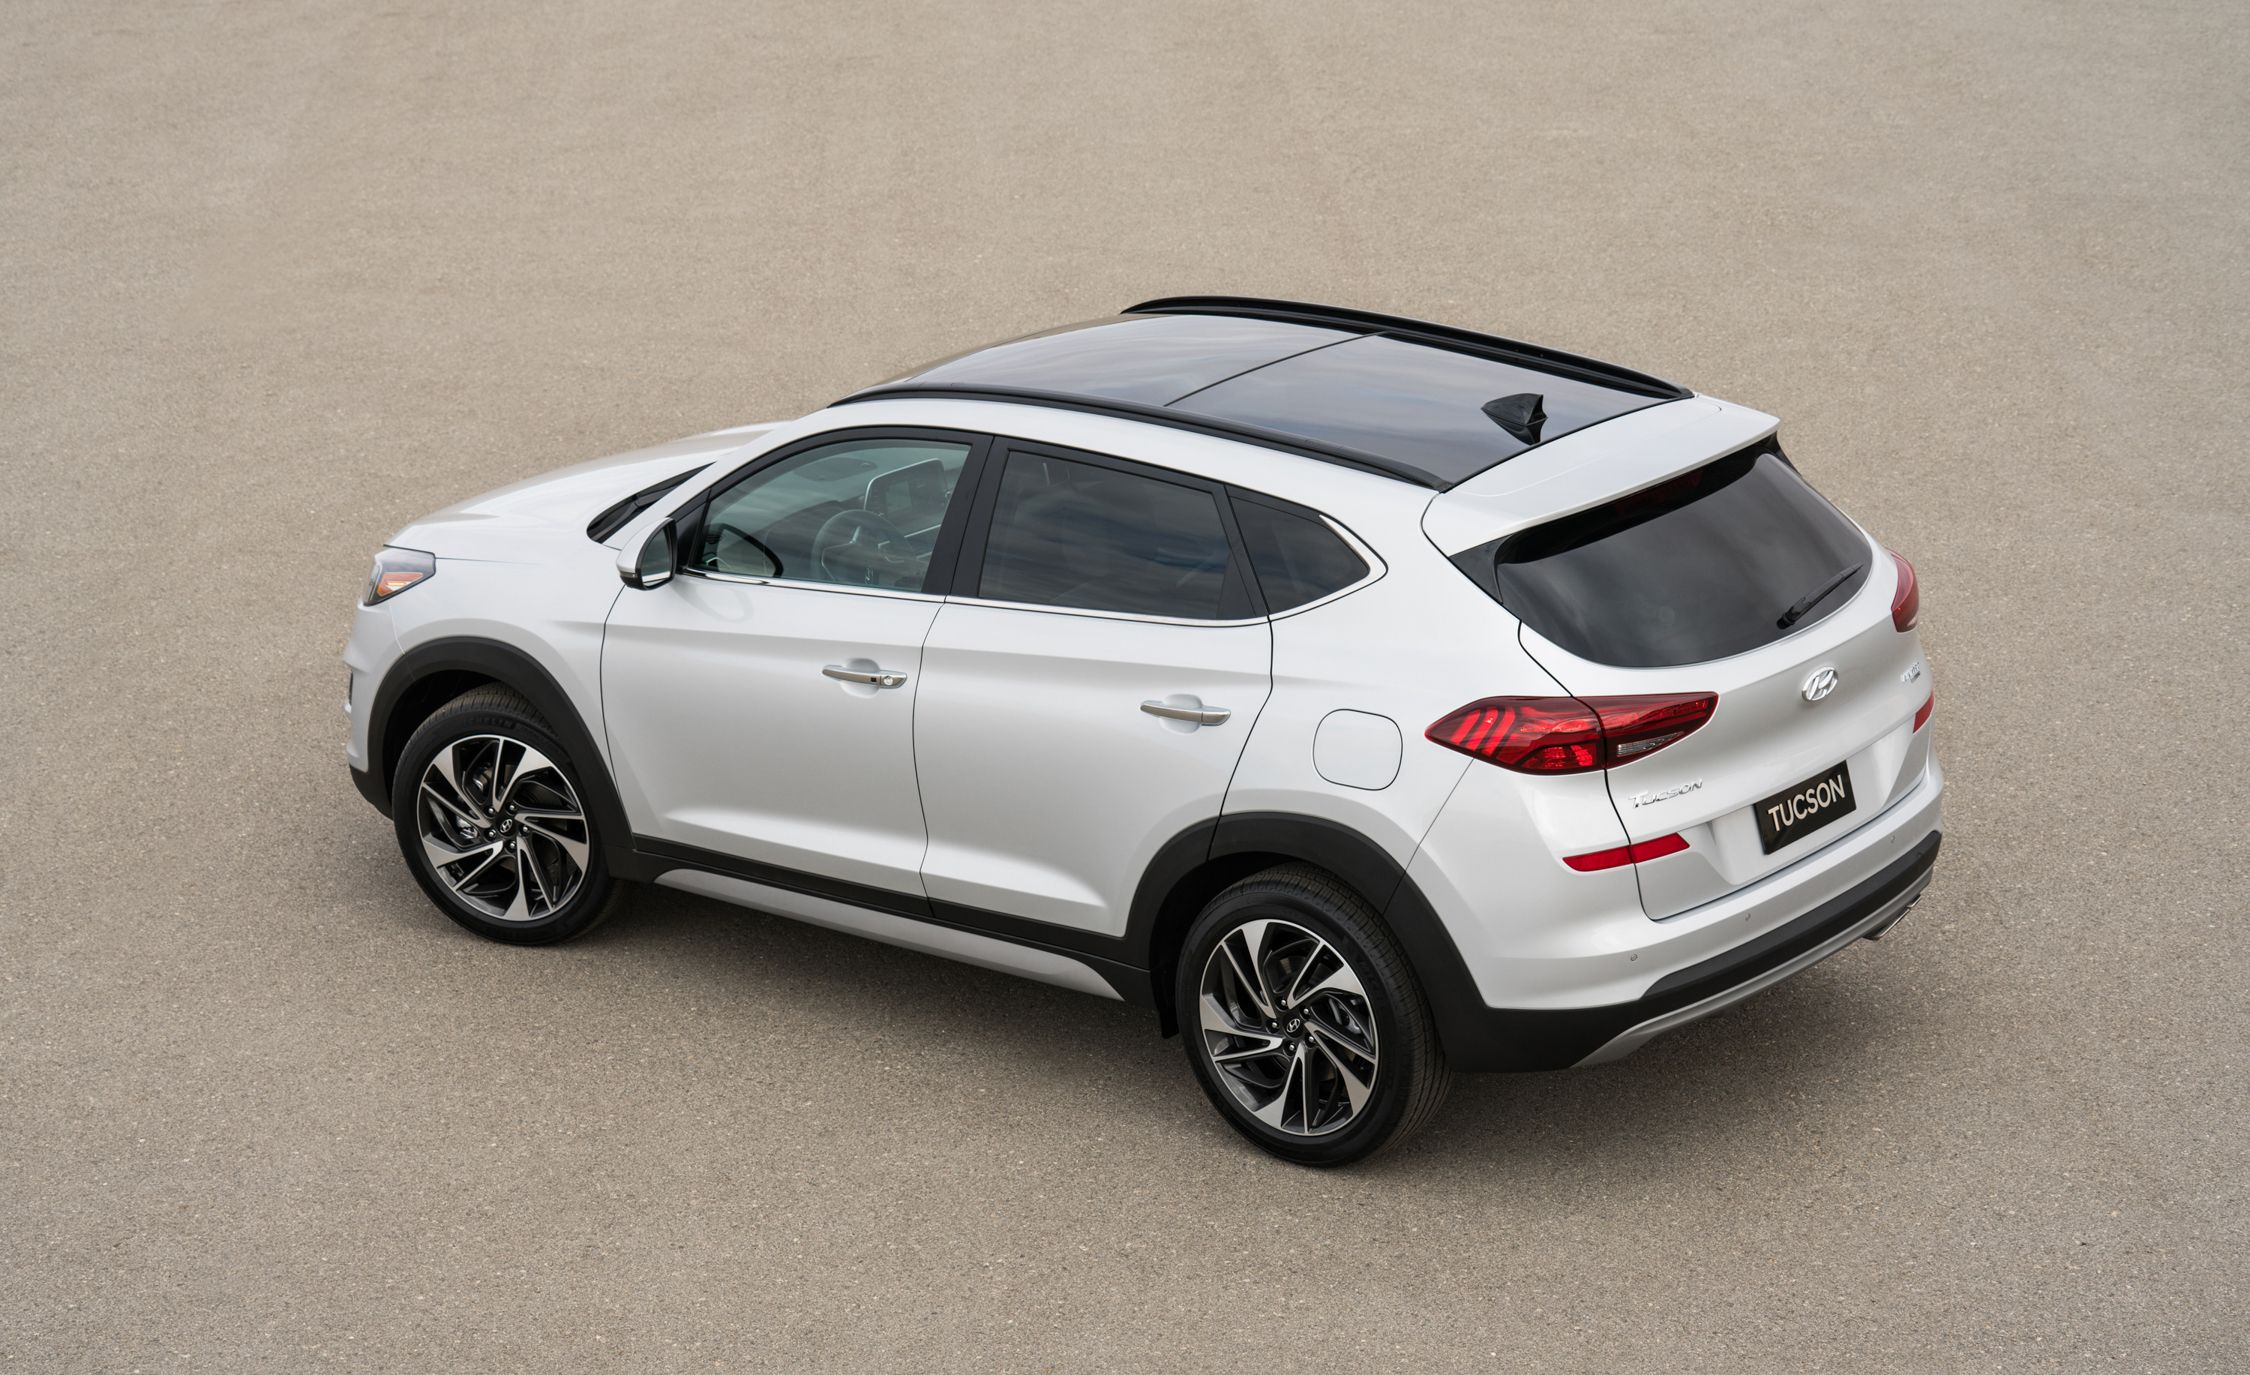 hyundai tucson value 2018 review